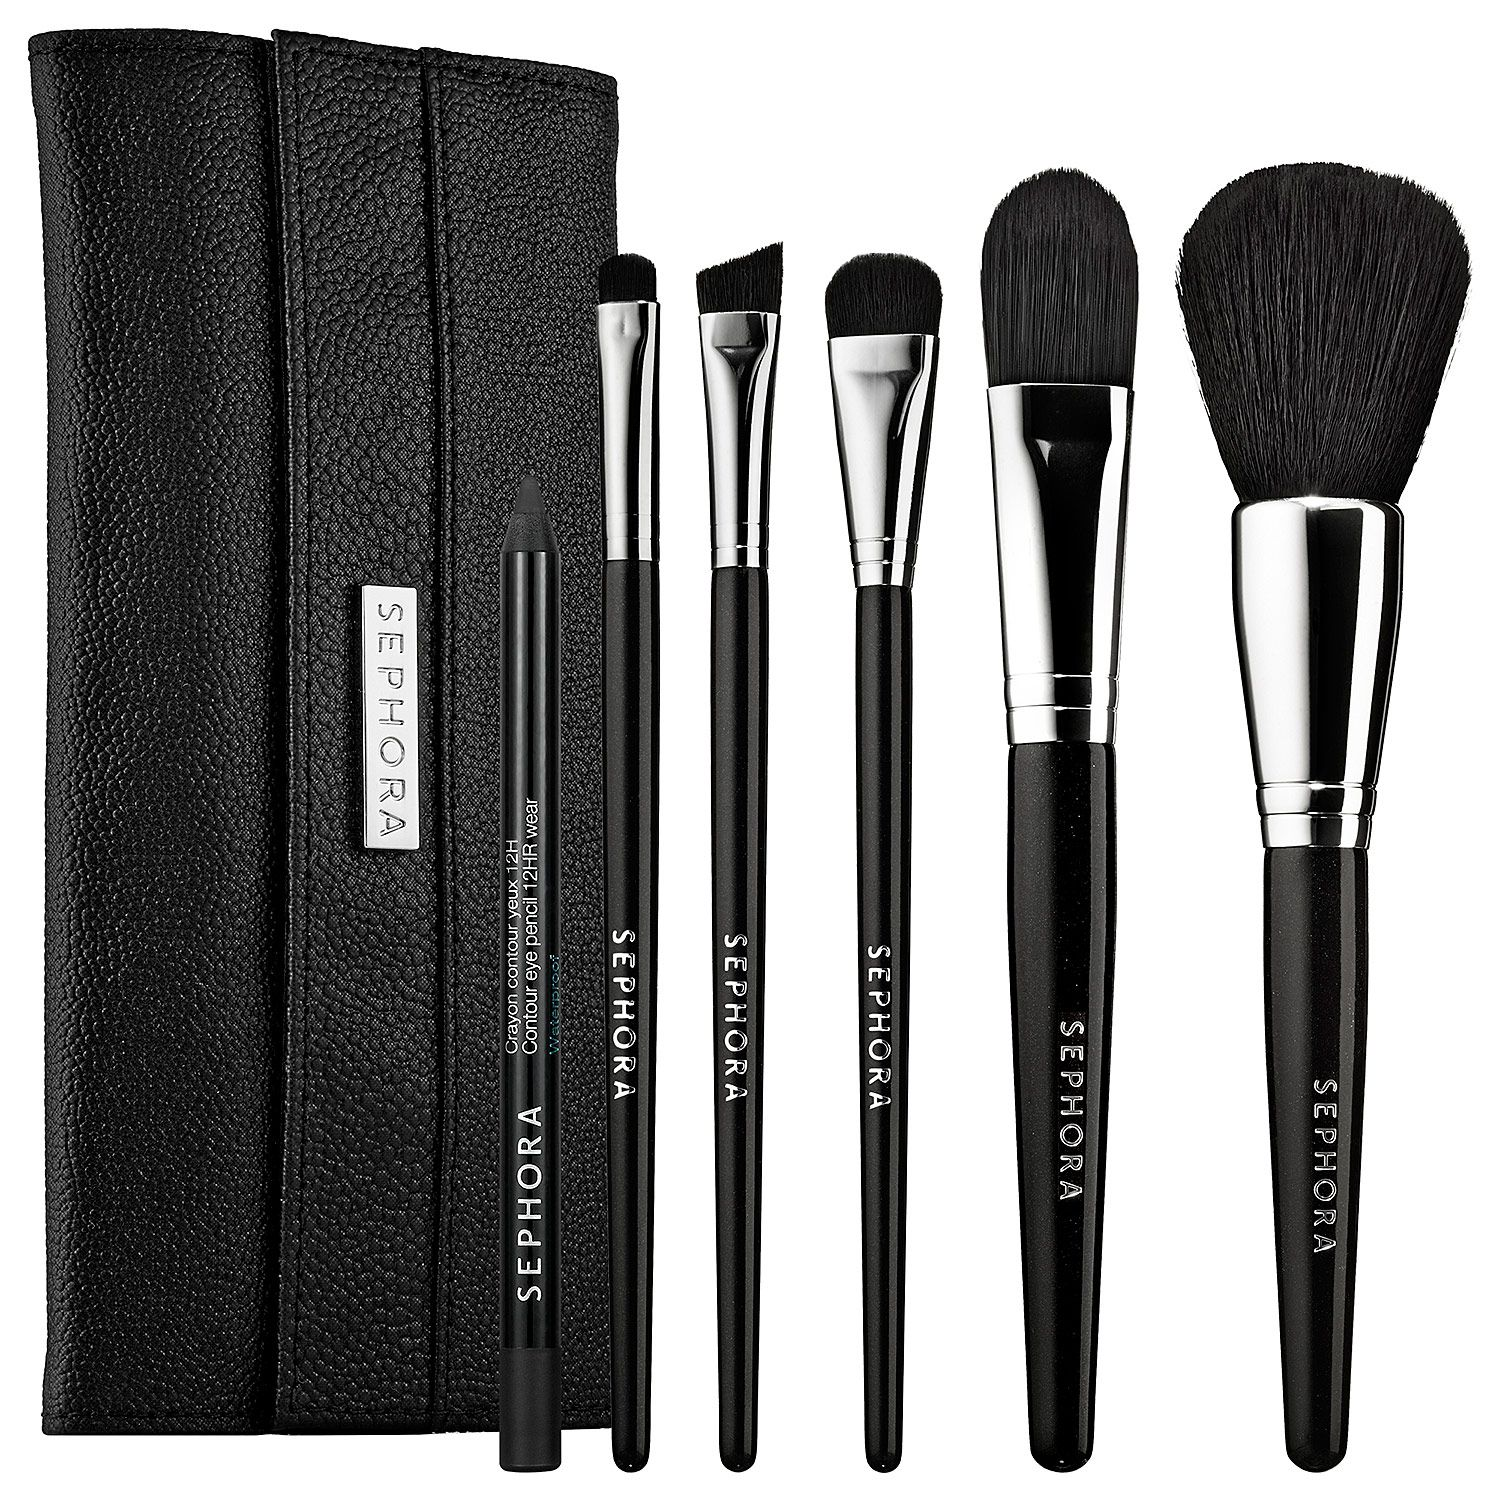 SEPHORA COLLECTION Face the Day Full Face Brush Set 49